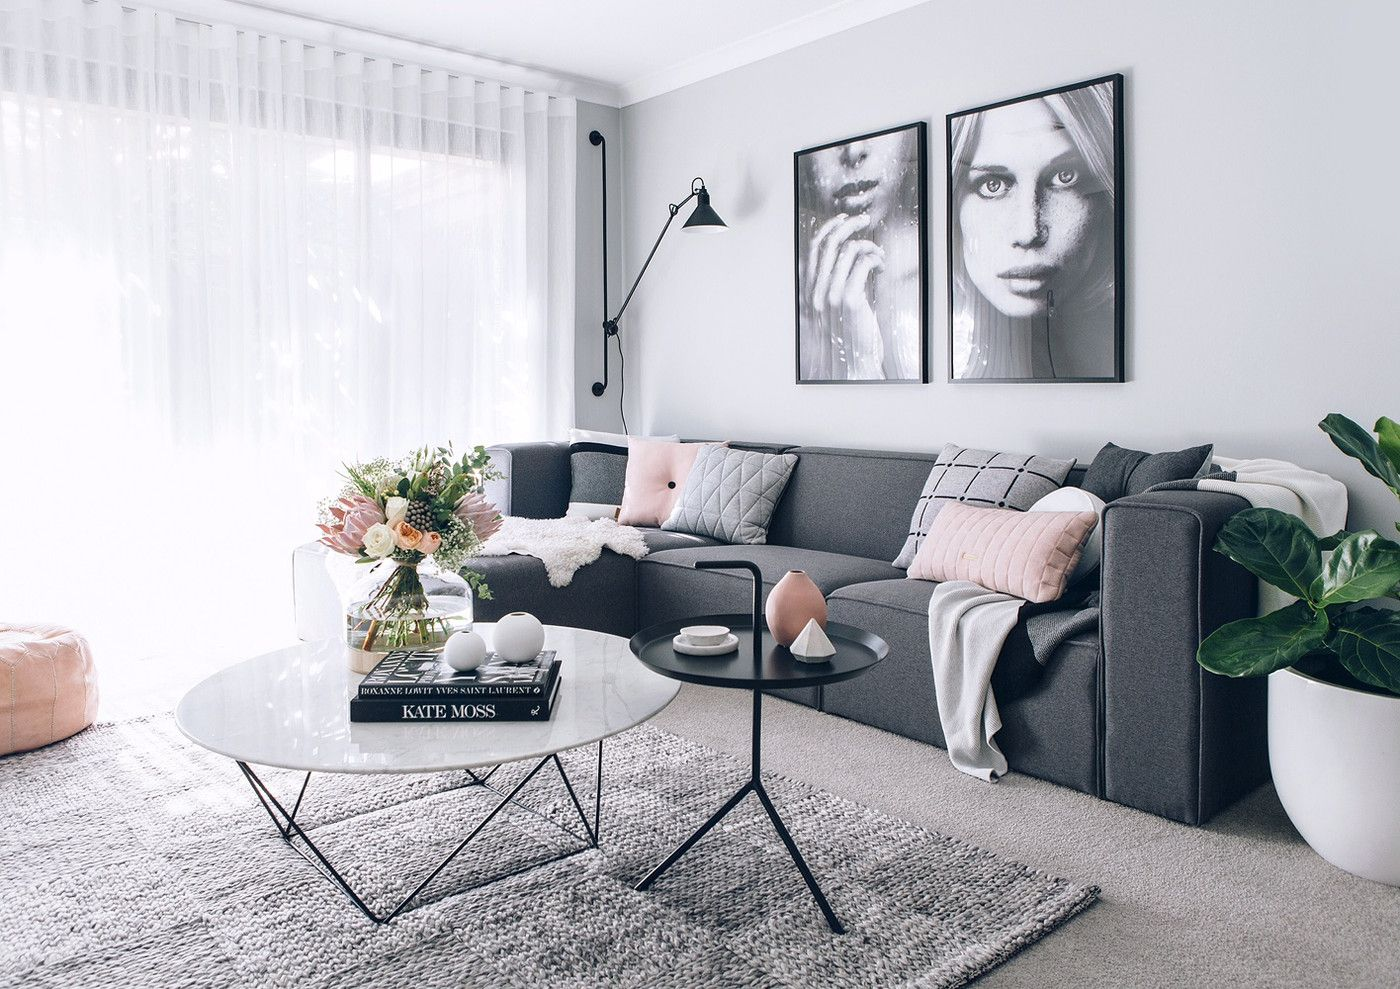 Immy and Indi is focused on sourcing the very best Scandinavian style homewares and marble products from both local Australian brands and international brands.